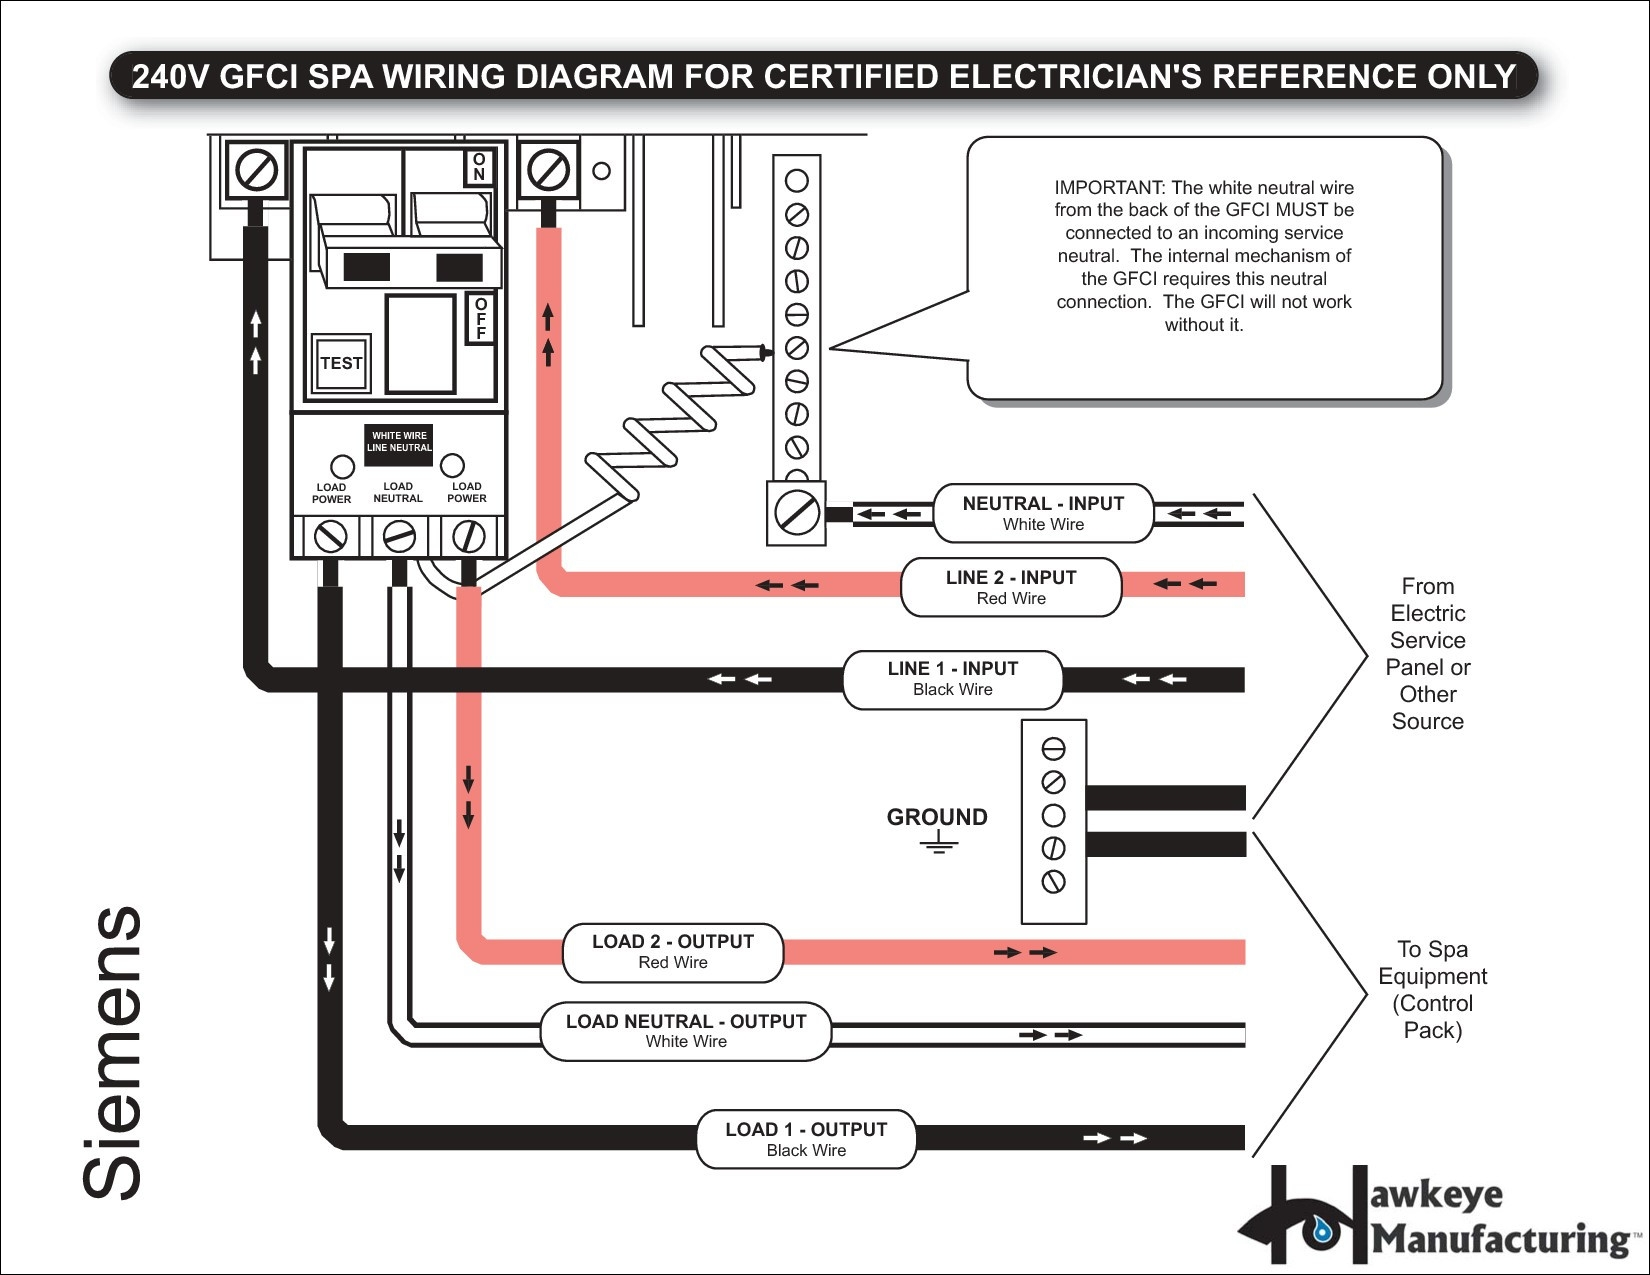 2 pole gfci breaker wiring diagram Download-Wiring Diagram Gfci Outlet Valid 2 Pole Gfci Breaker Wiring Diagram Fantastic Wiring Diagram 14-t